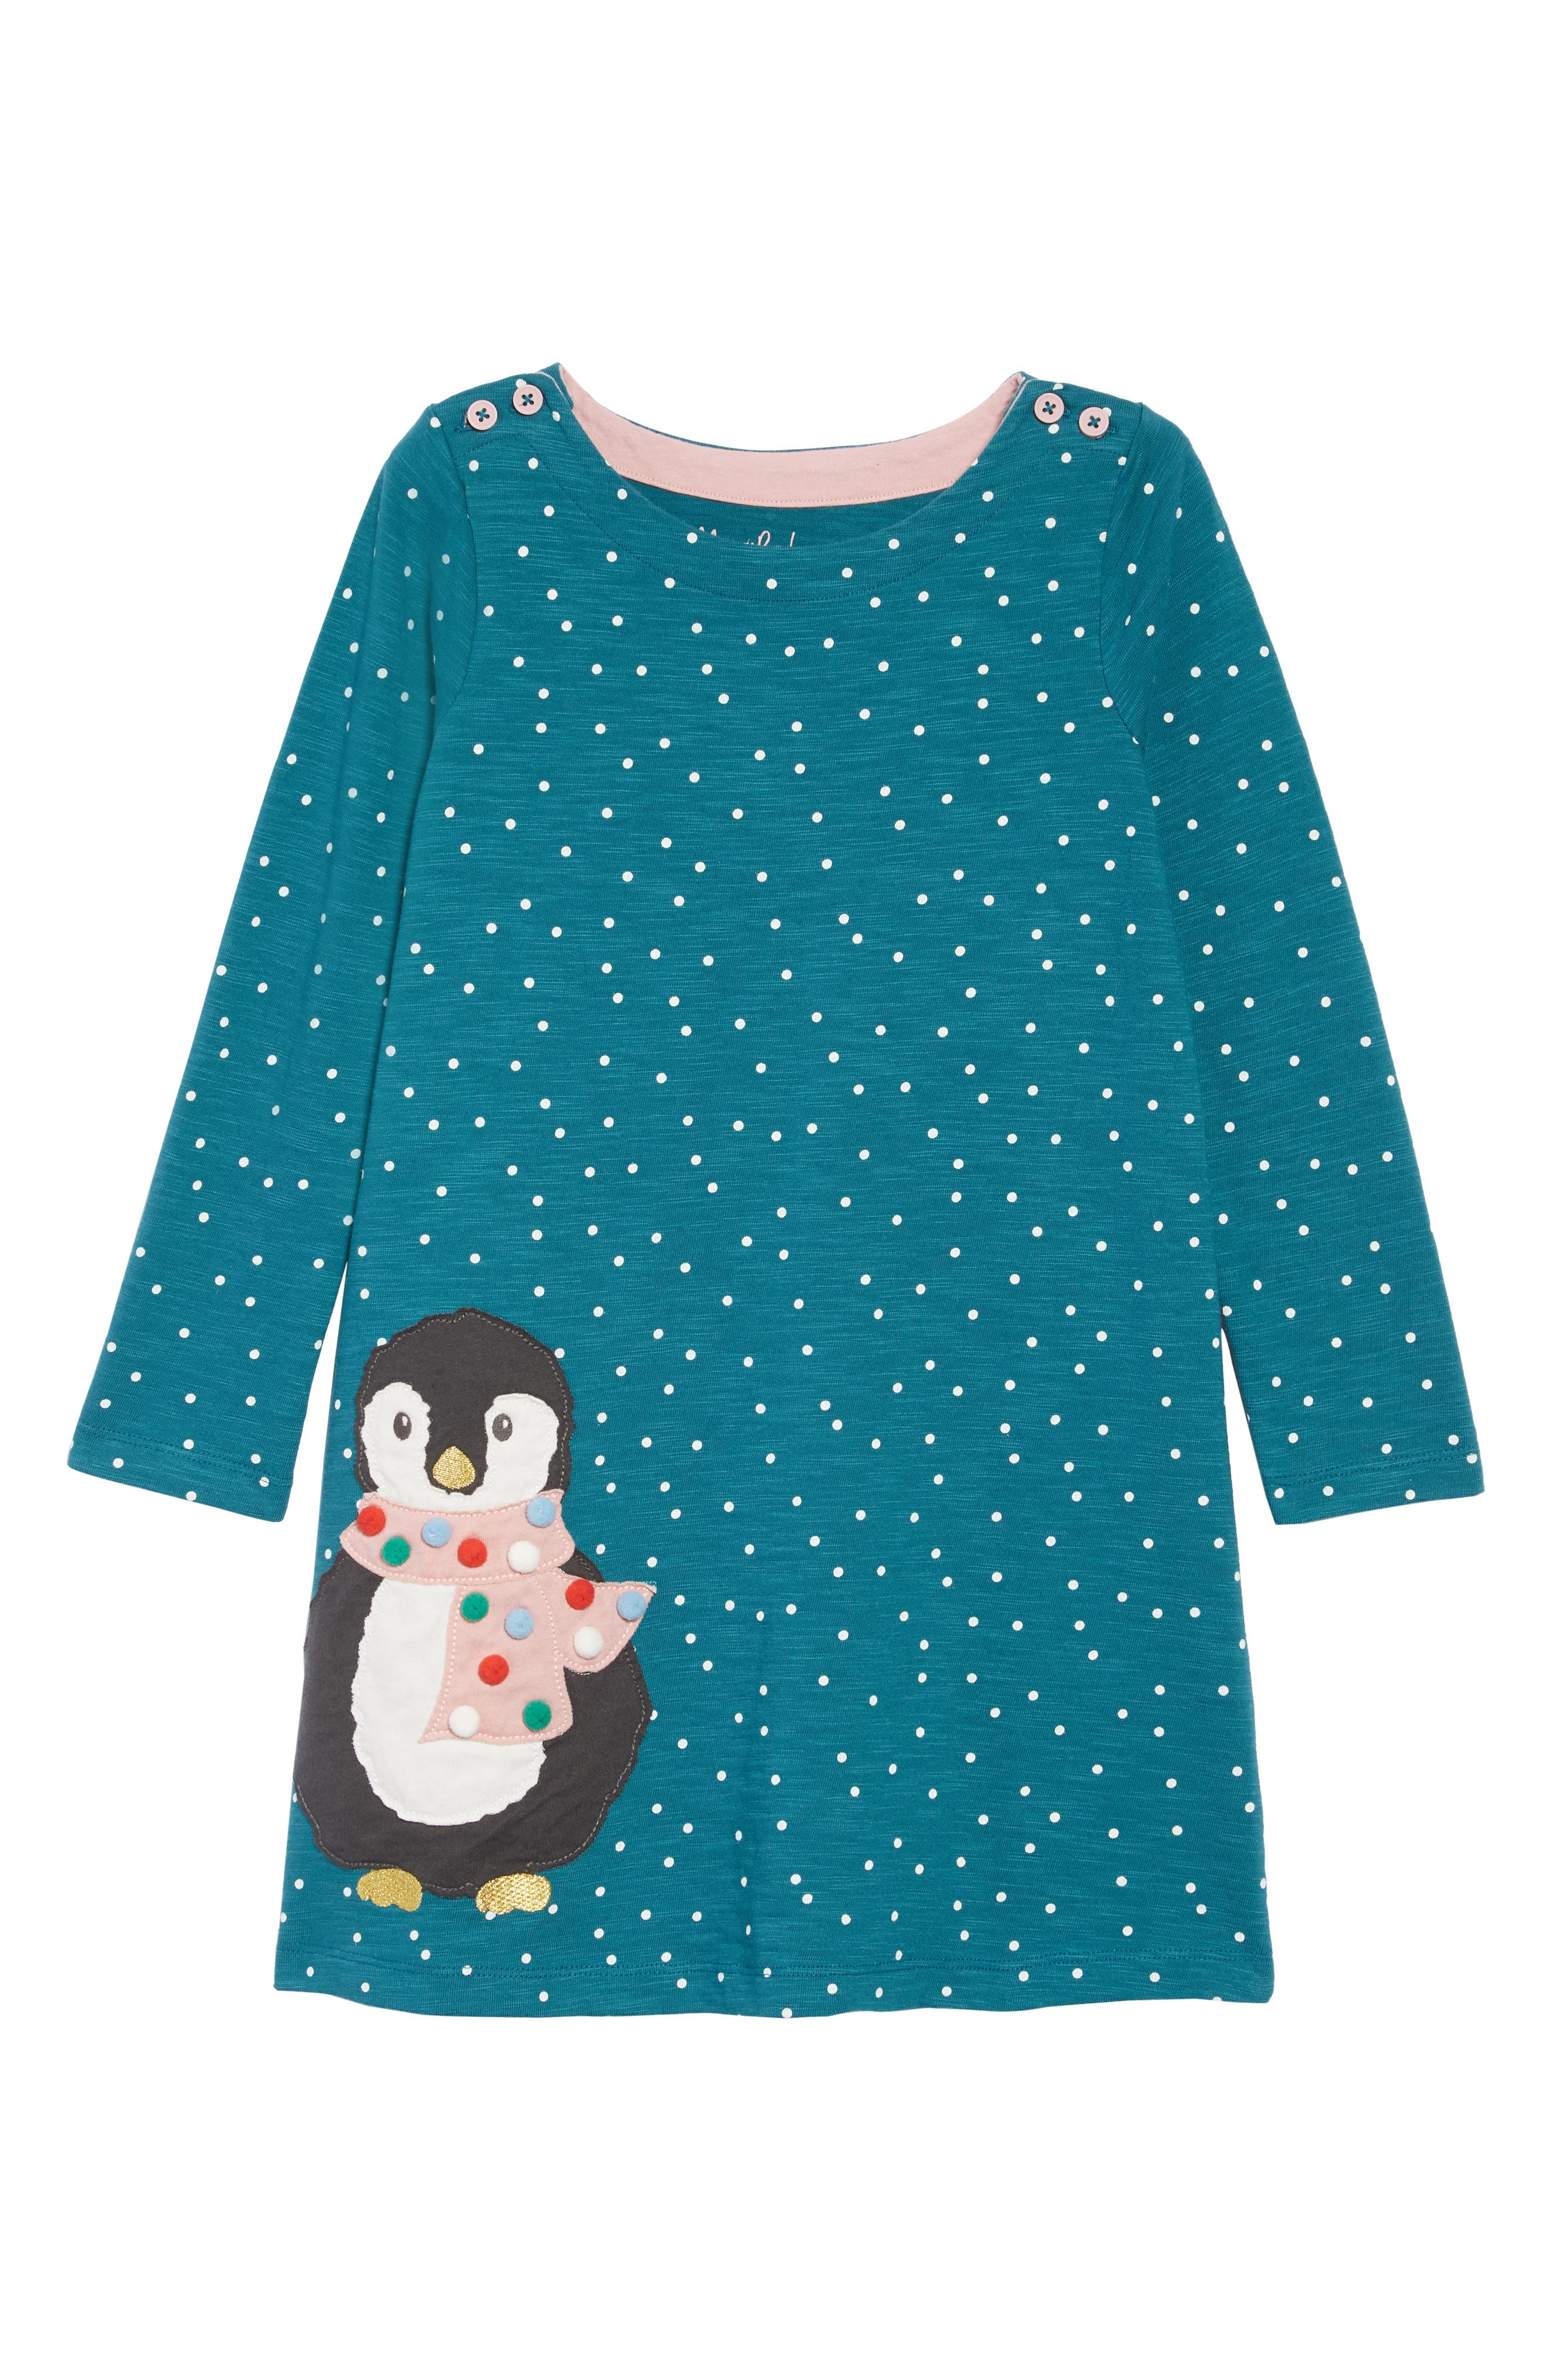 Mini Boden Spotty Animal Appliqué Dress,                             Main thumbnail 1, color,                             DGR DRAKE GREEN PENGUIN